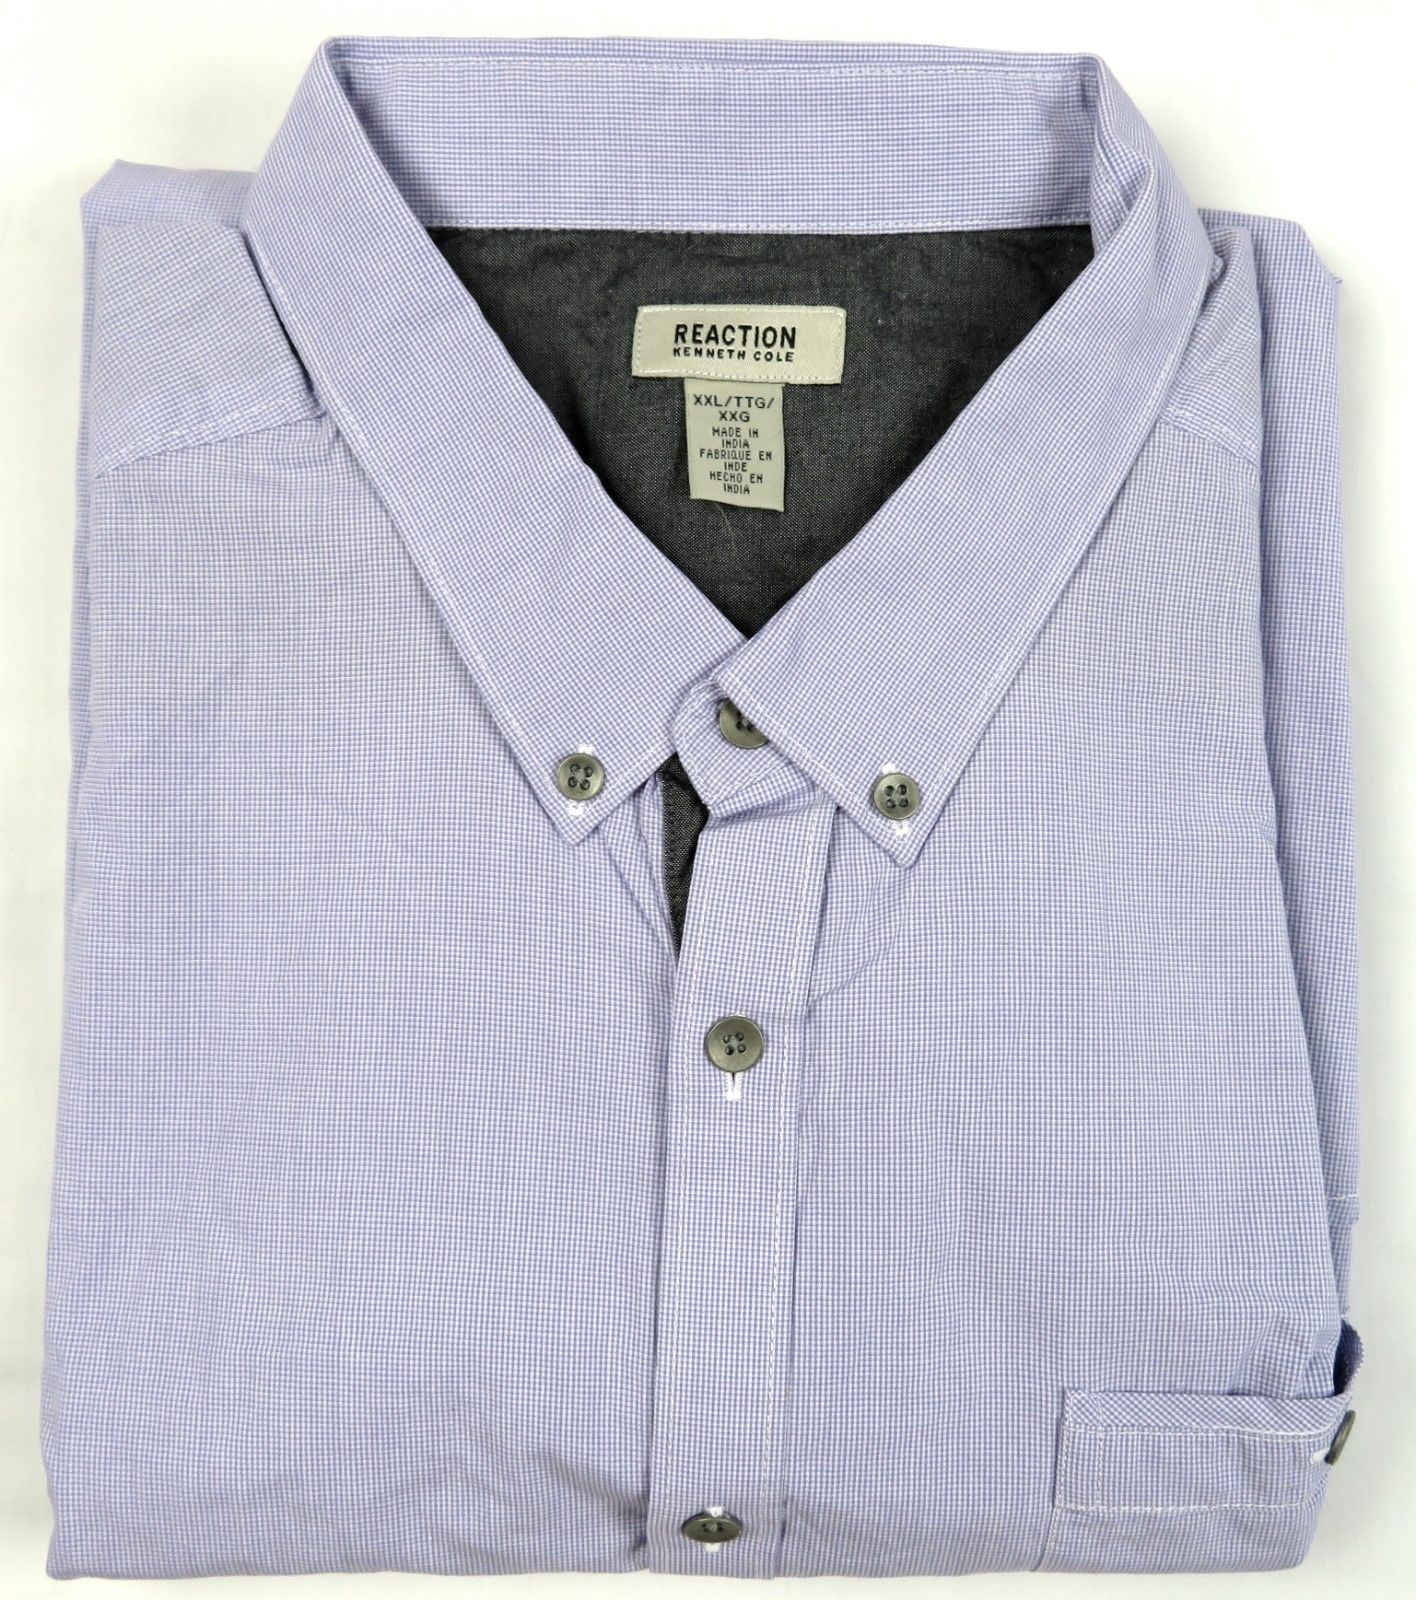 Kenneth Cole Reaction Shirt Men's Long Sleeve Button-down Casual Cotton Lilac #1